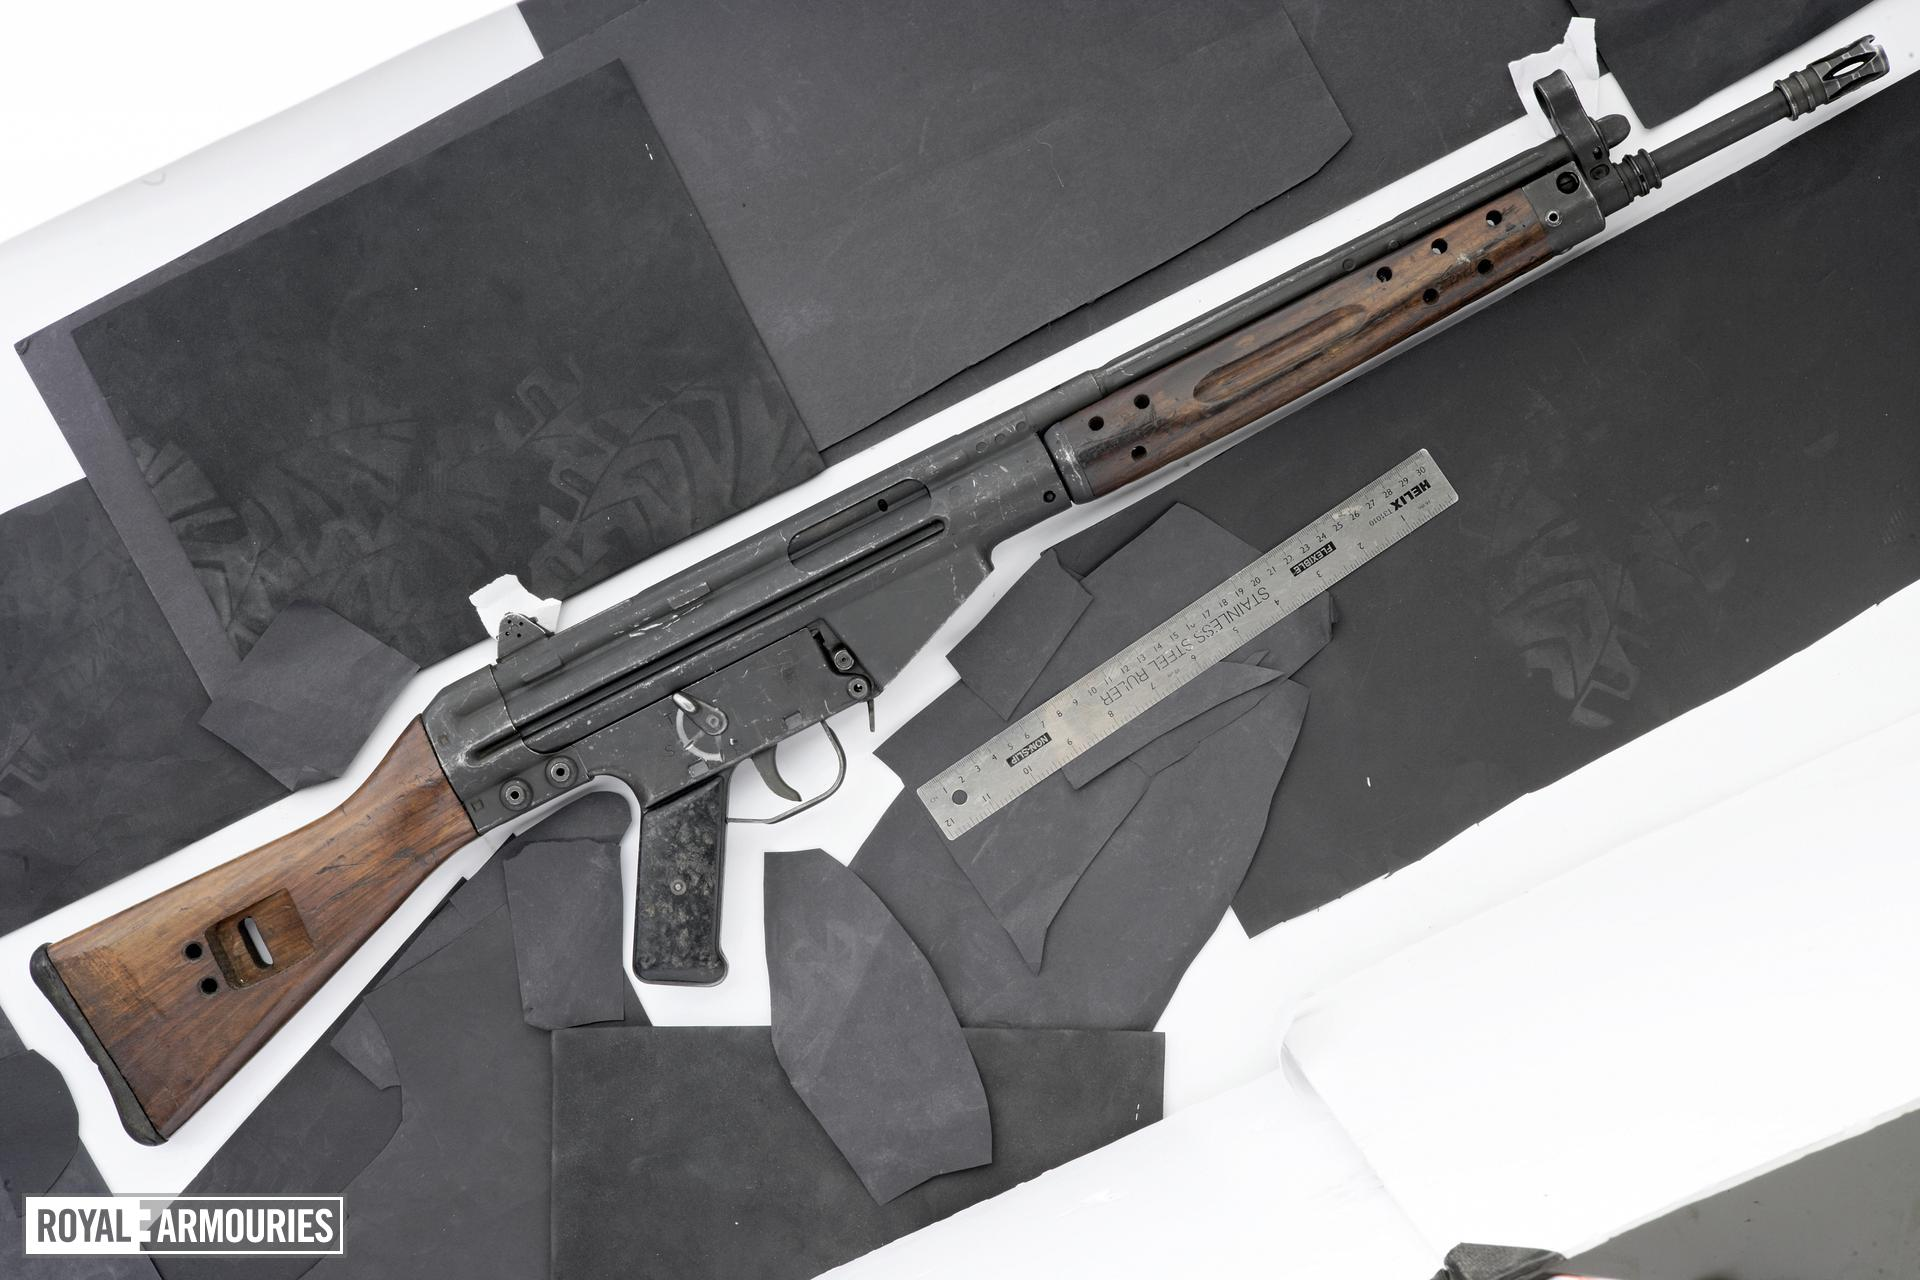 Centrefire automatic rifle - CETME Model C